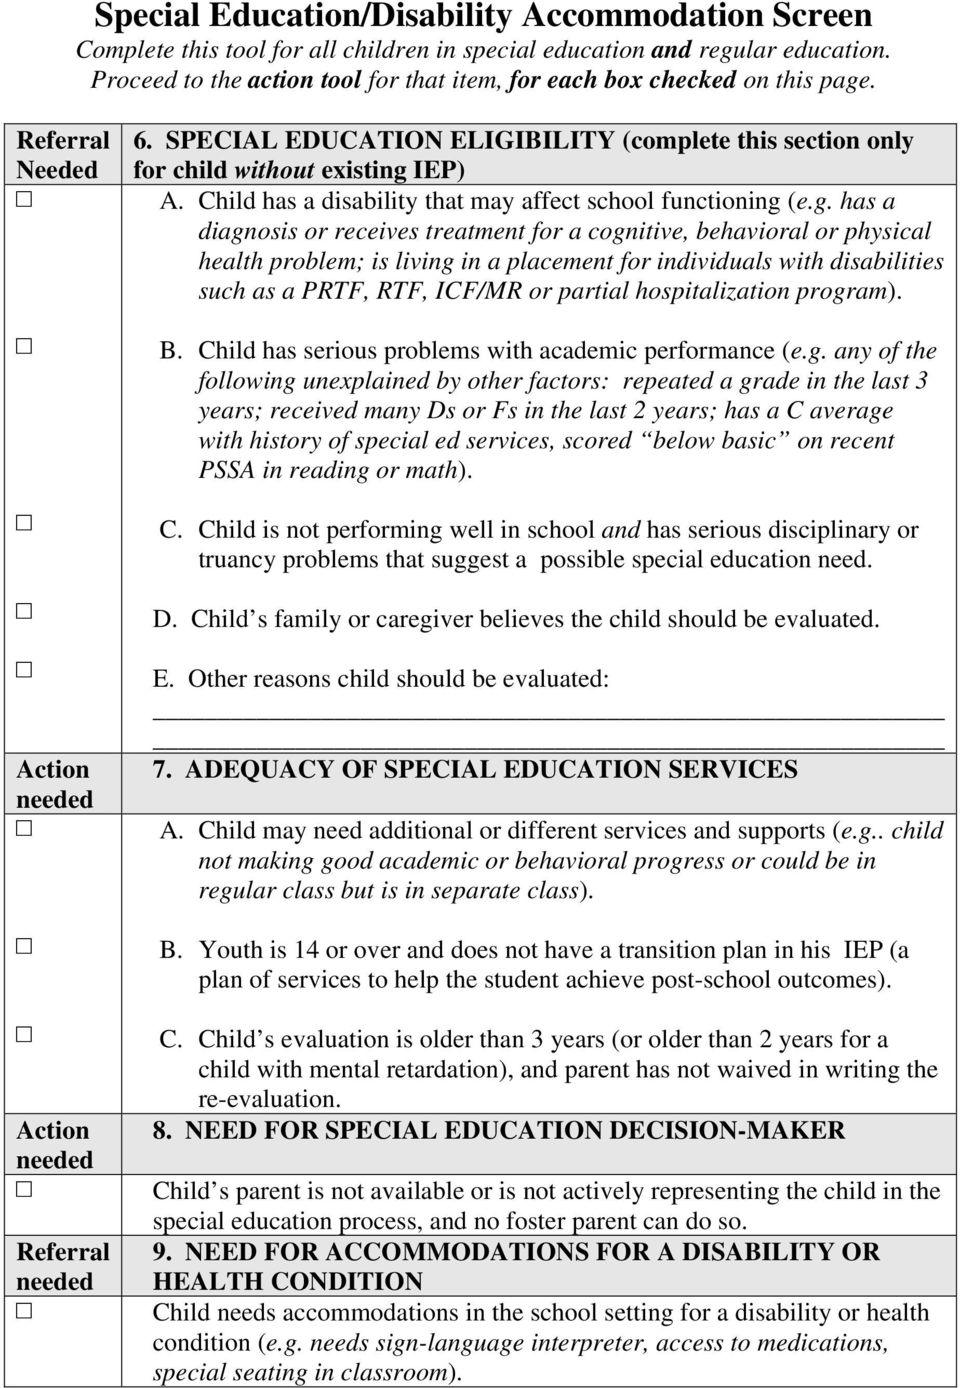 SPECIAL EDUCATION ELIGIBILITY (complete this section only for child without existing